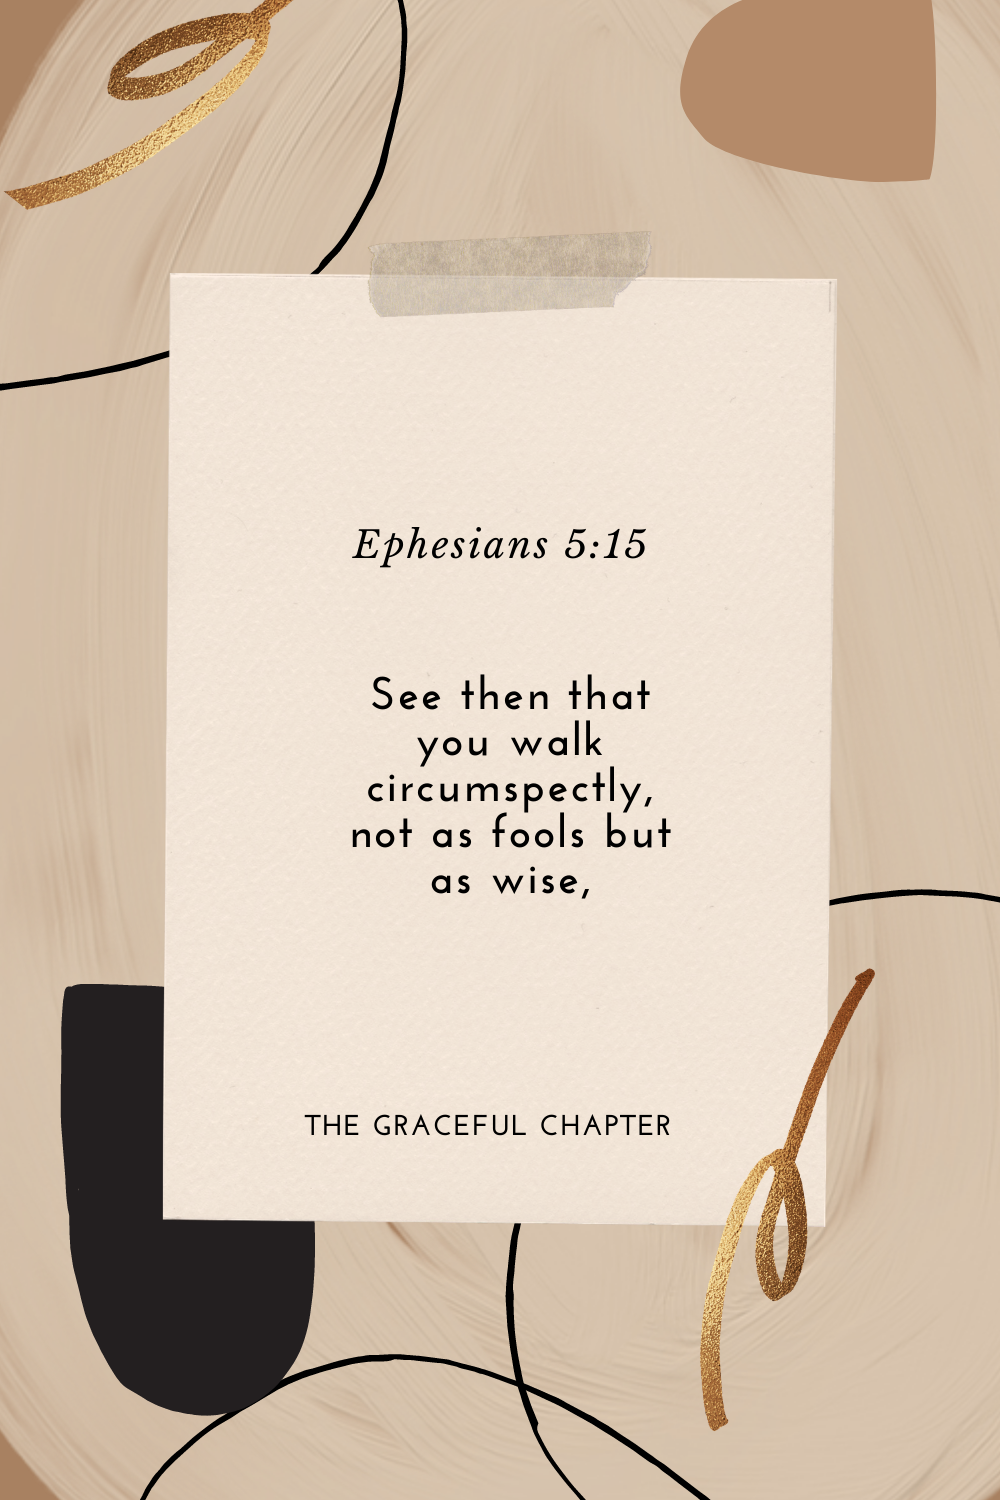 See then that you walk circumspectly, not as fools but as wise, Ephesians 5:15